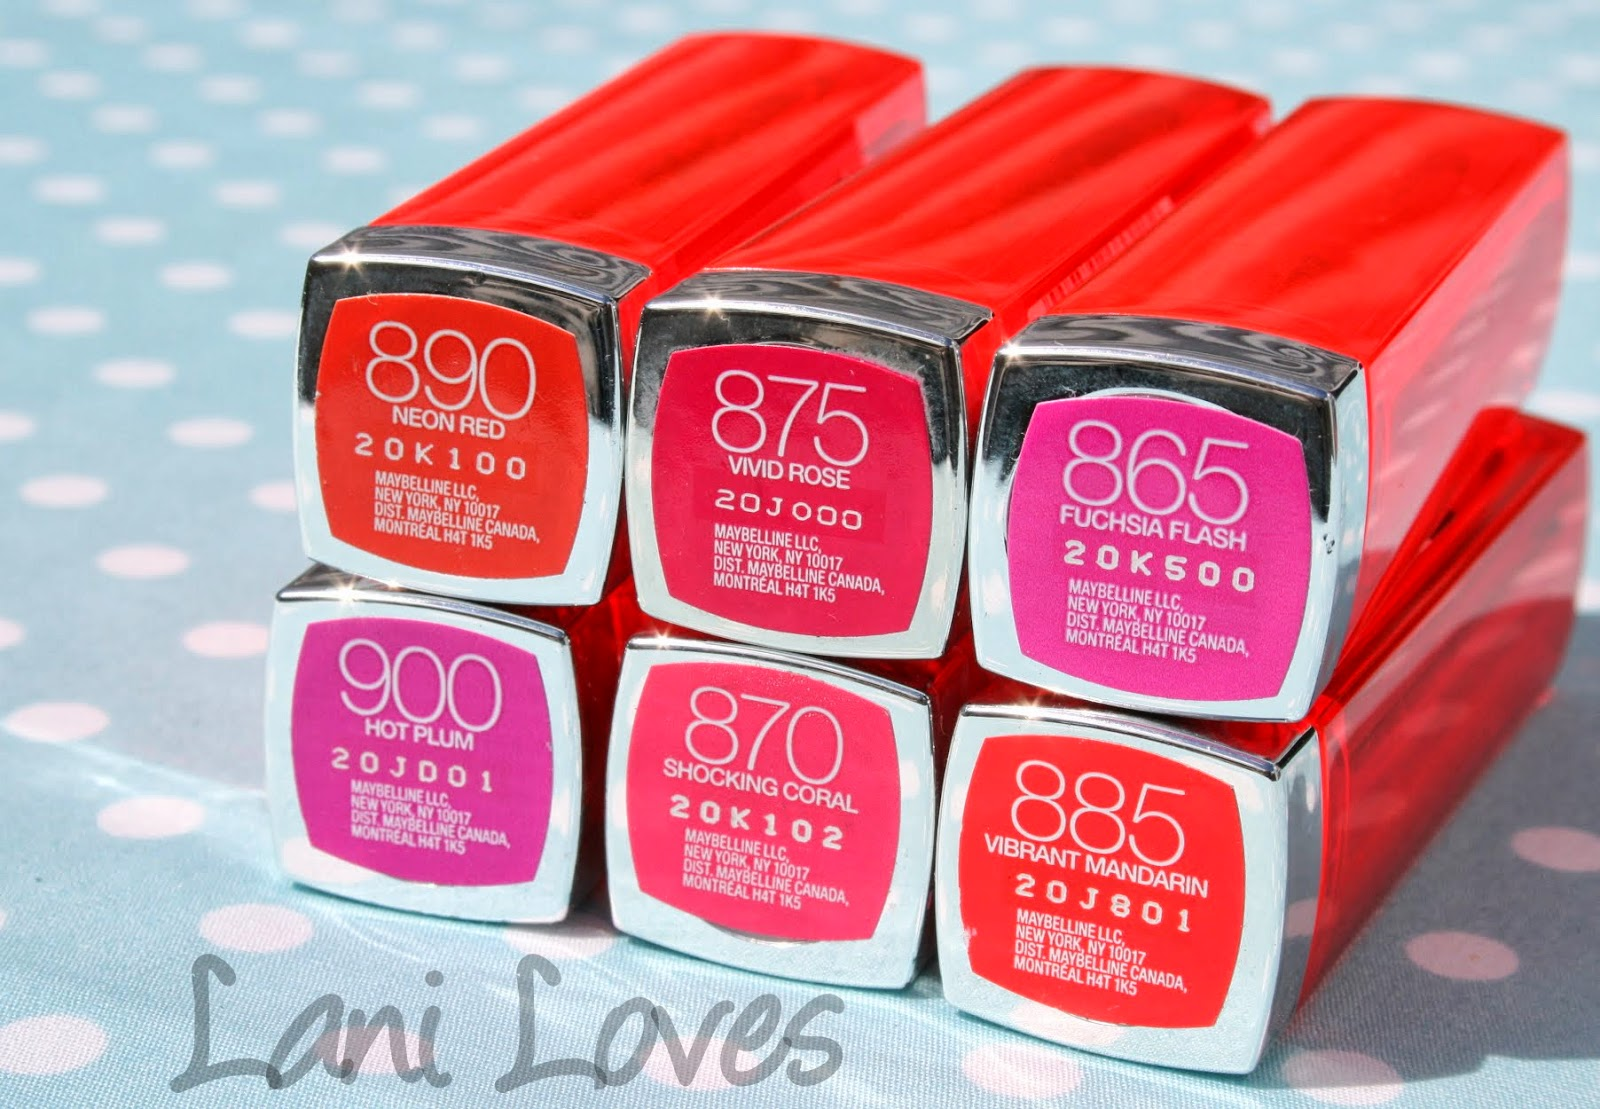 Maybelline Colorsensational Vivids - Neon Red, Vivid Rose, Fuchsia Flash, Hot Plum, Shocking Coral & Vibrant Mandarin